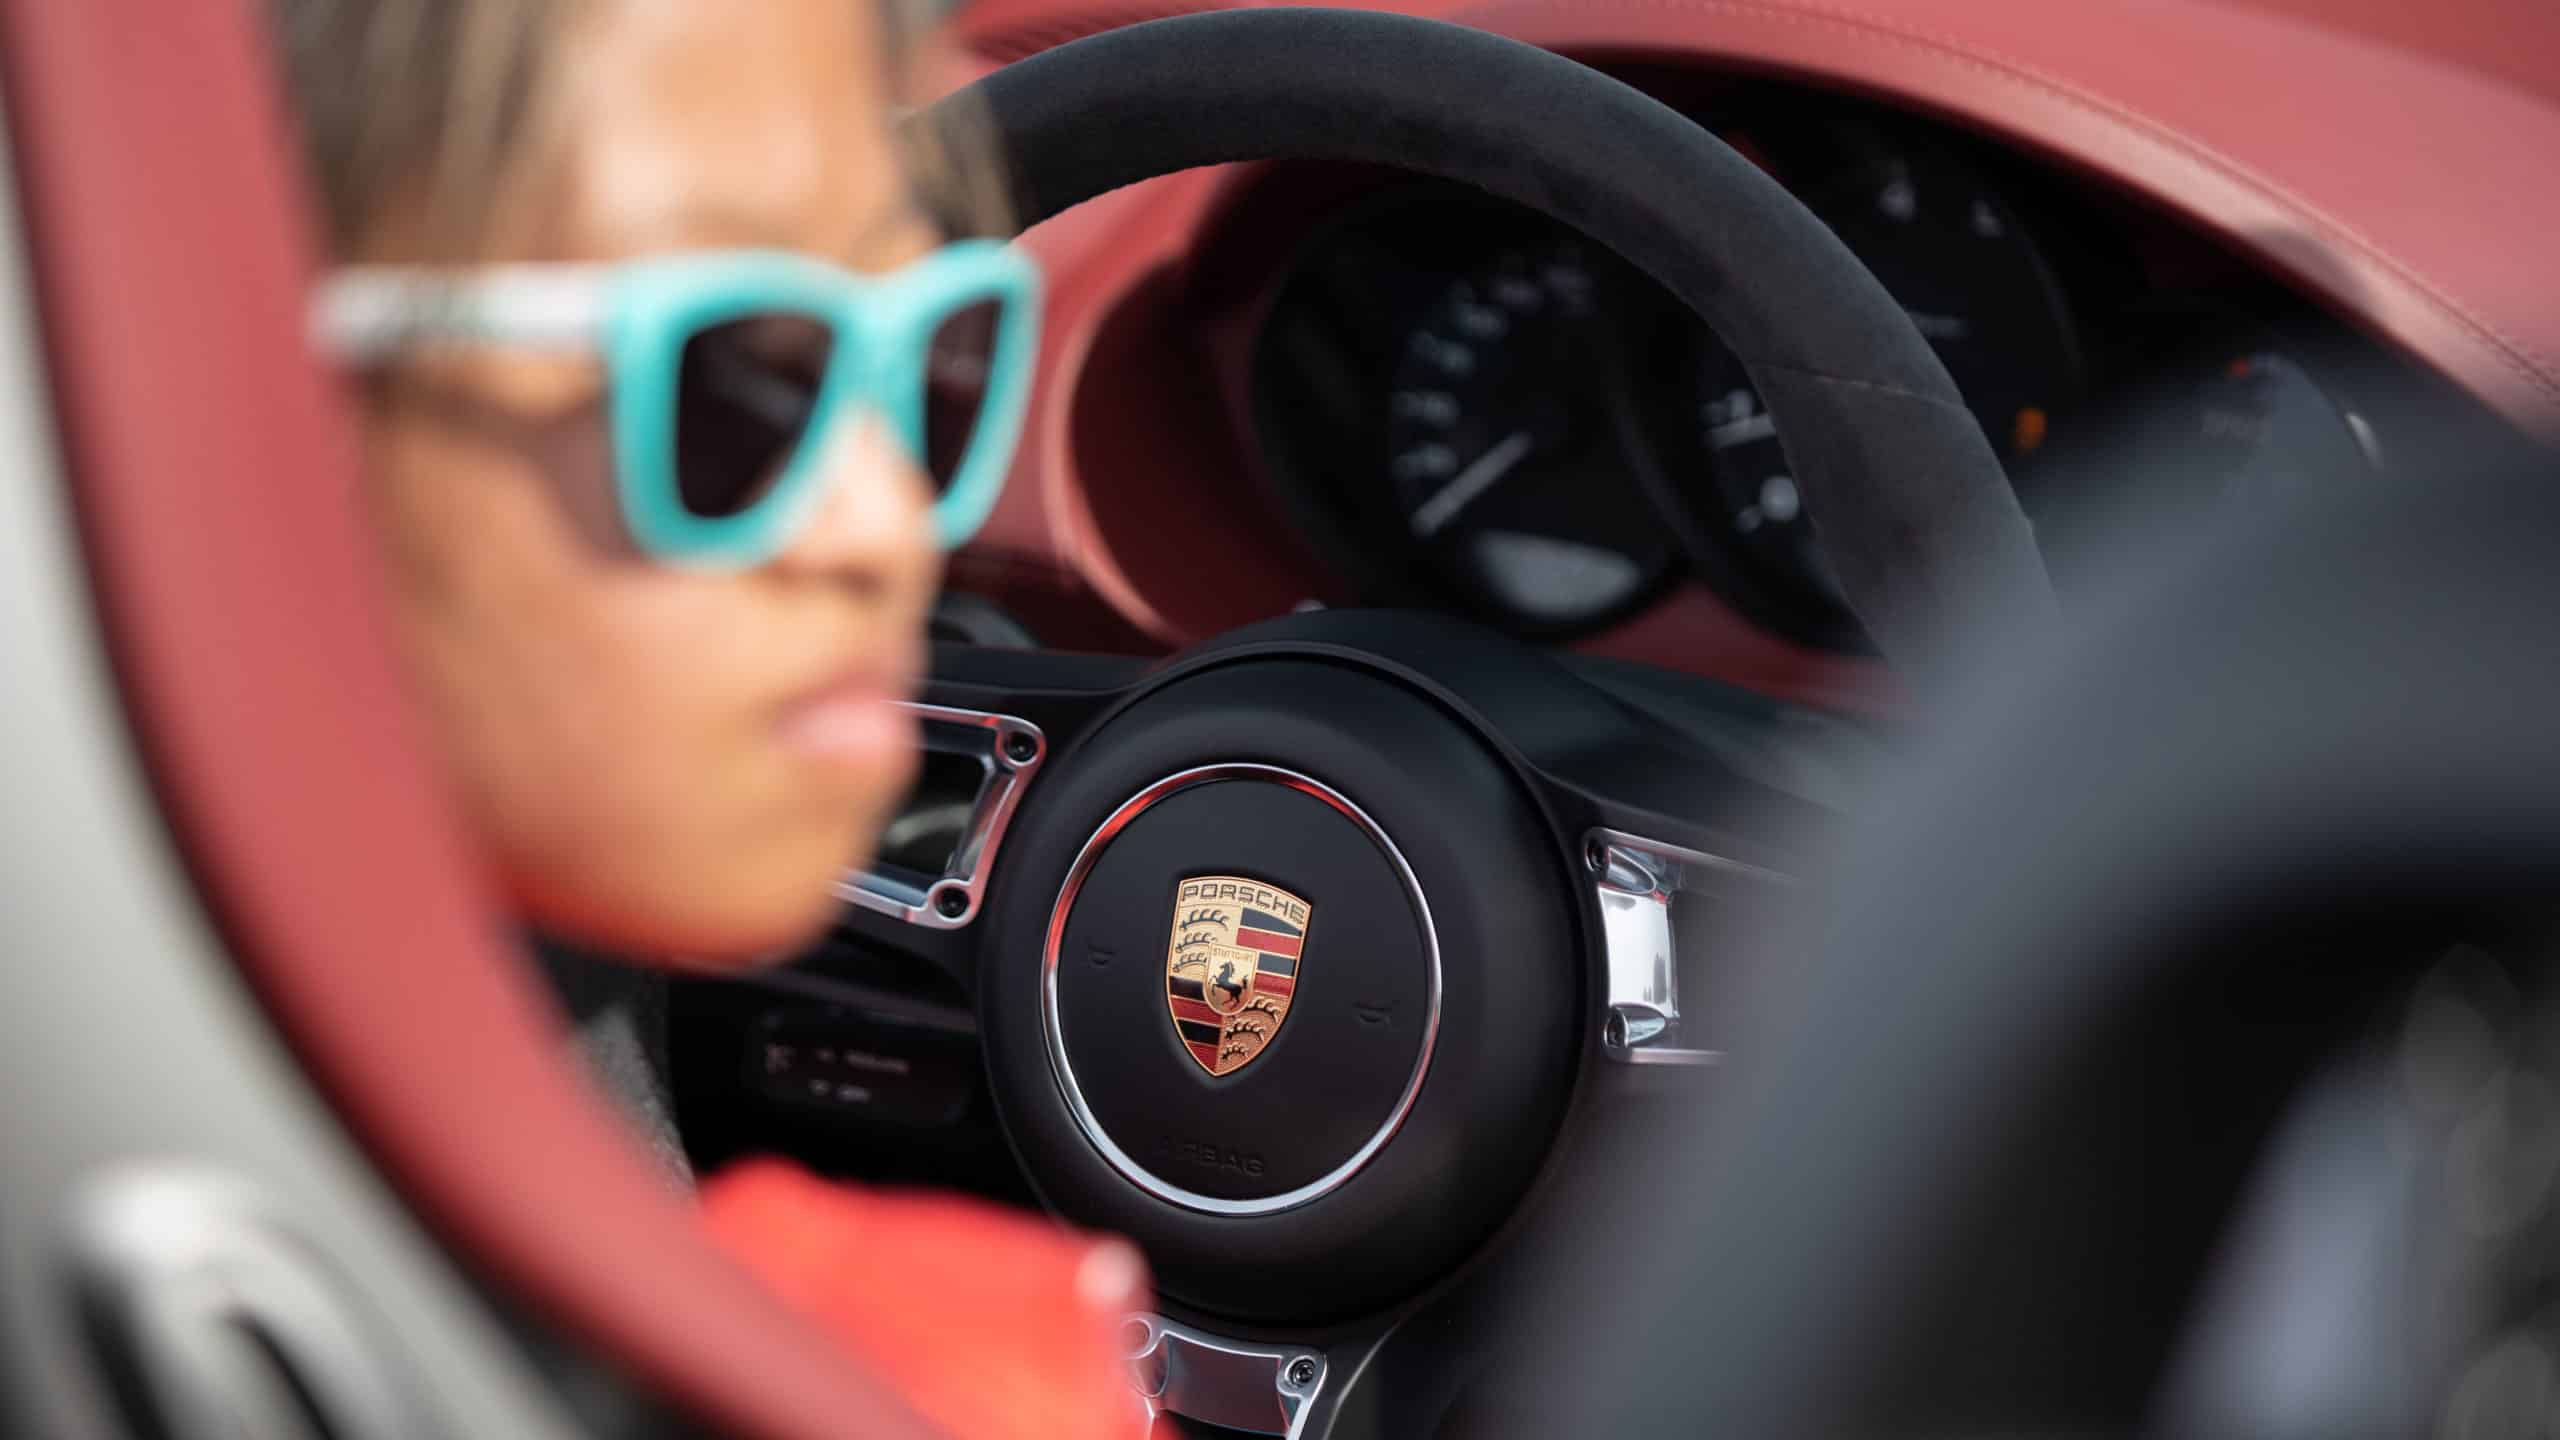 Porsche Guinness World Record Fastest Vehicle Slalom